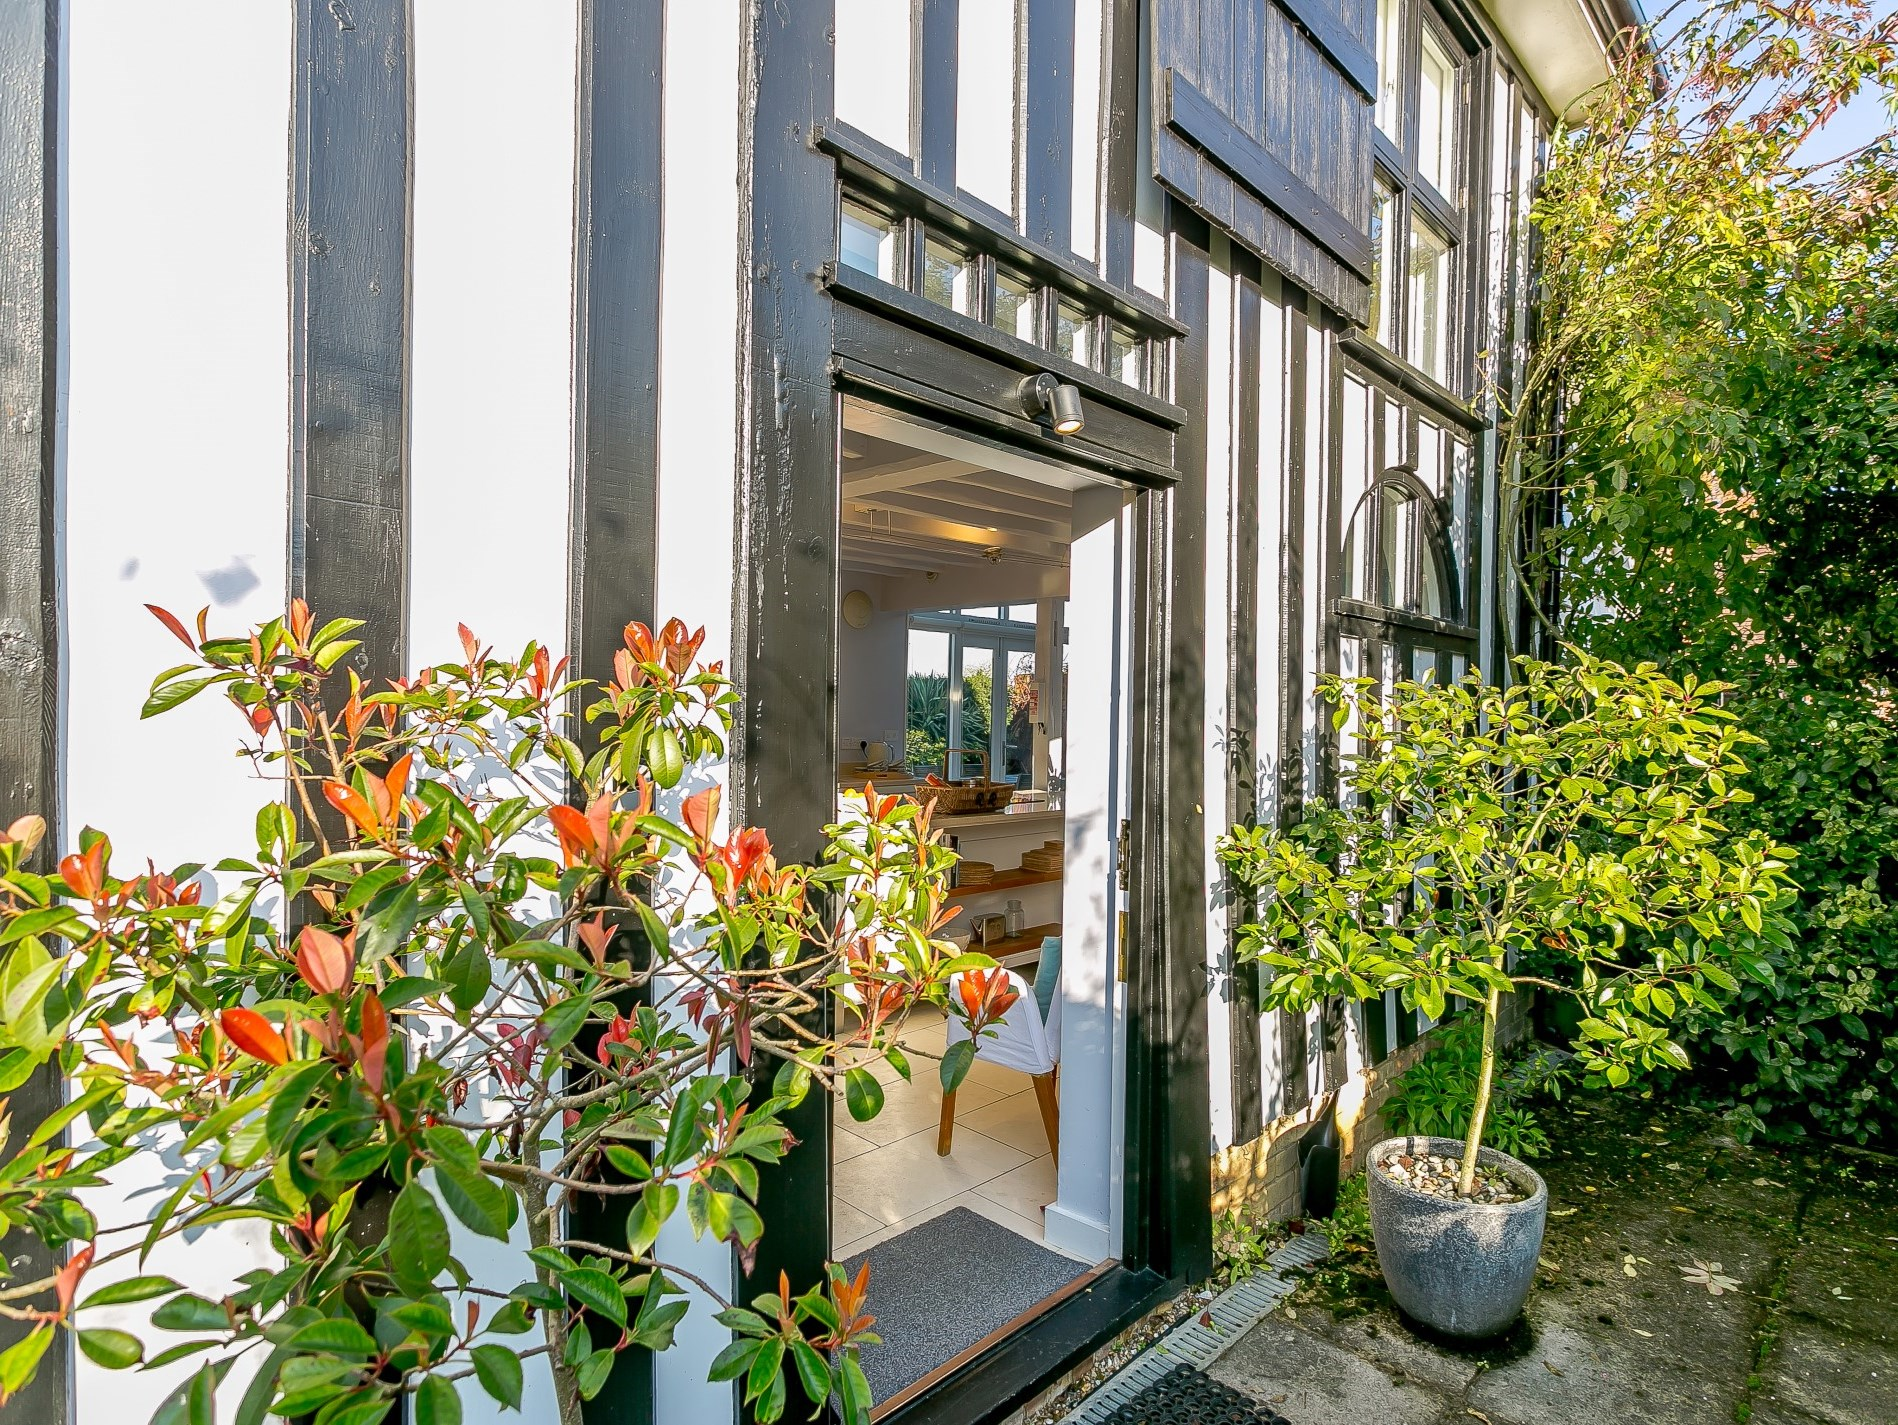 Beautifully refurbished property in picturesque rural setting